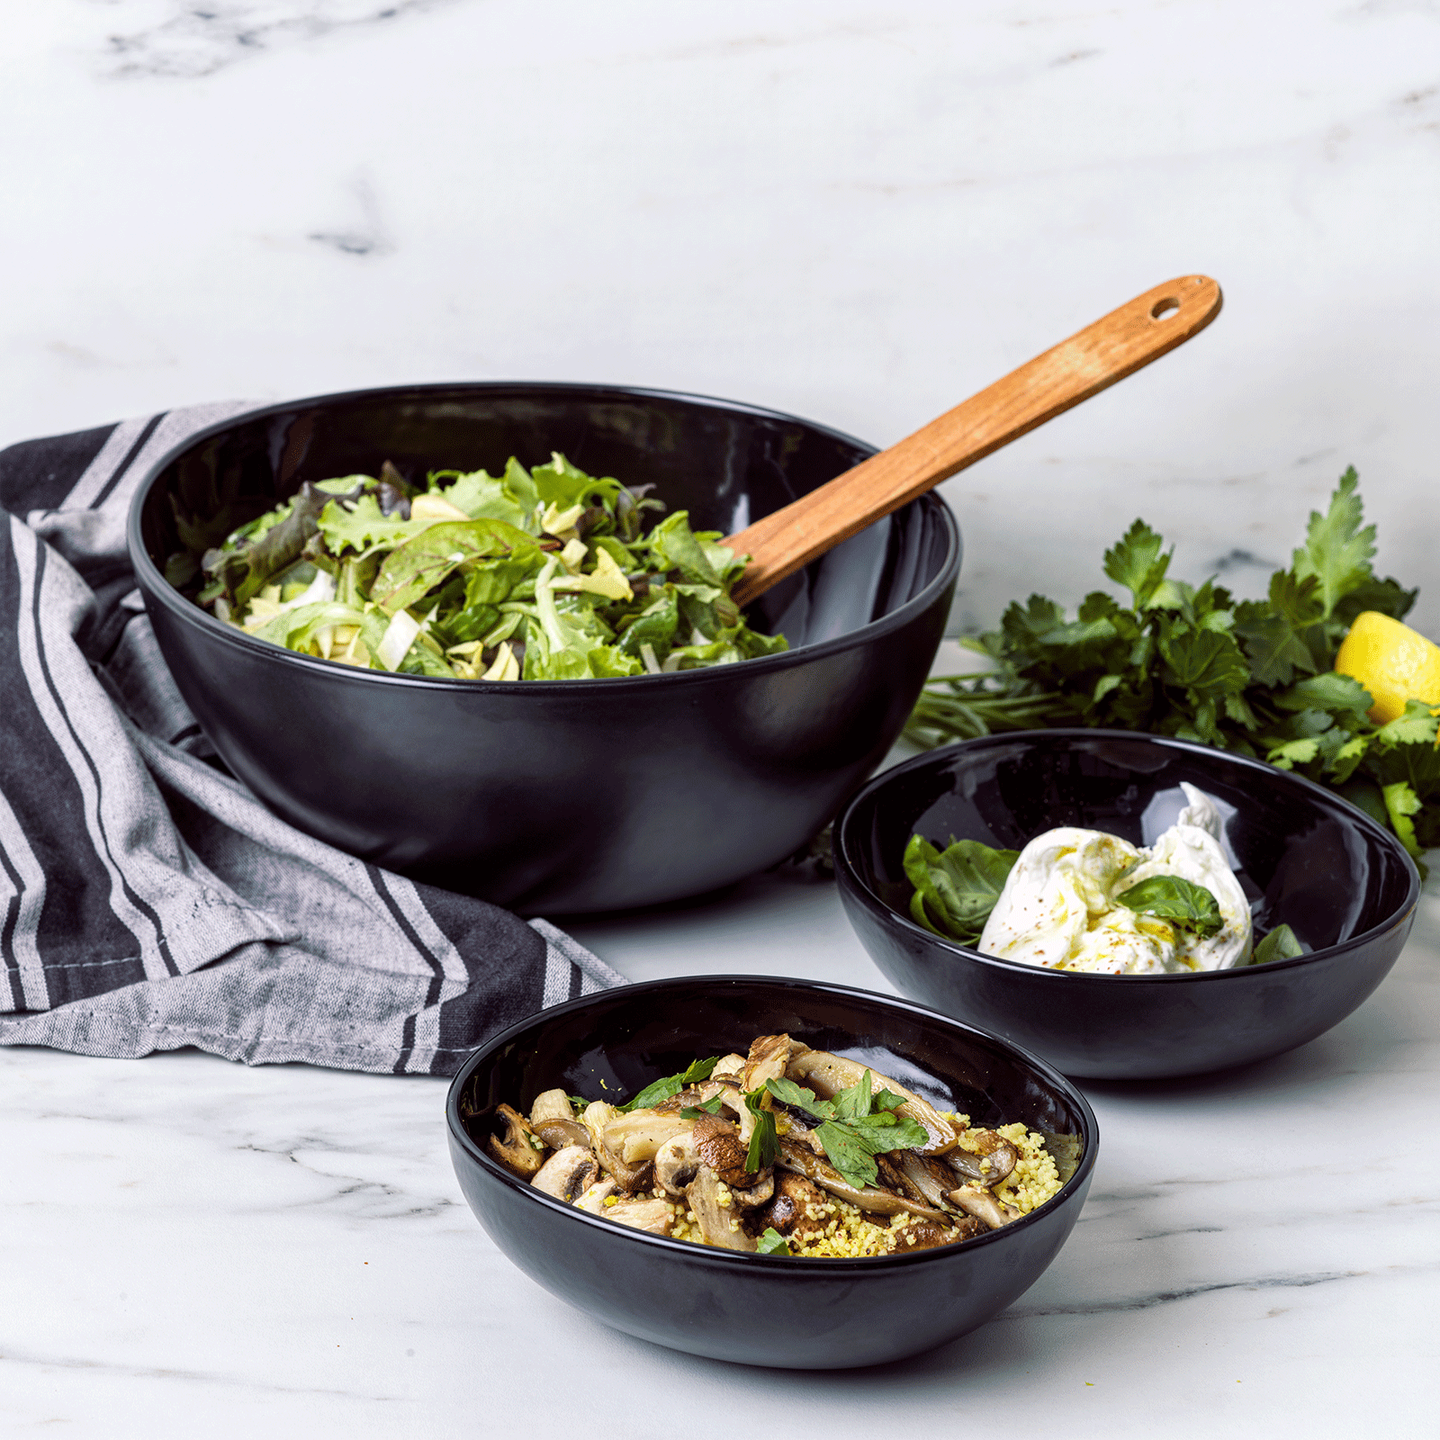 Chop & Grill Serving Bowl Small 2pc Set